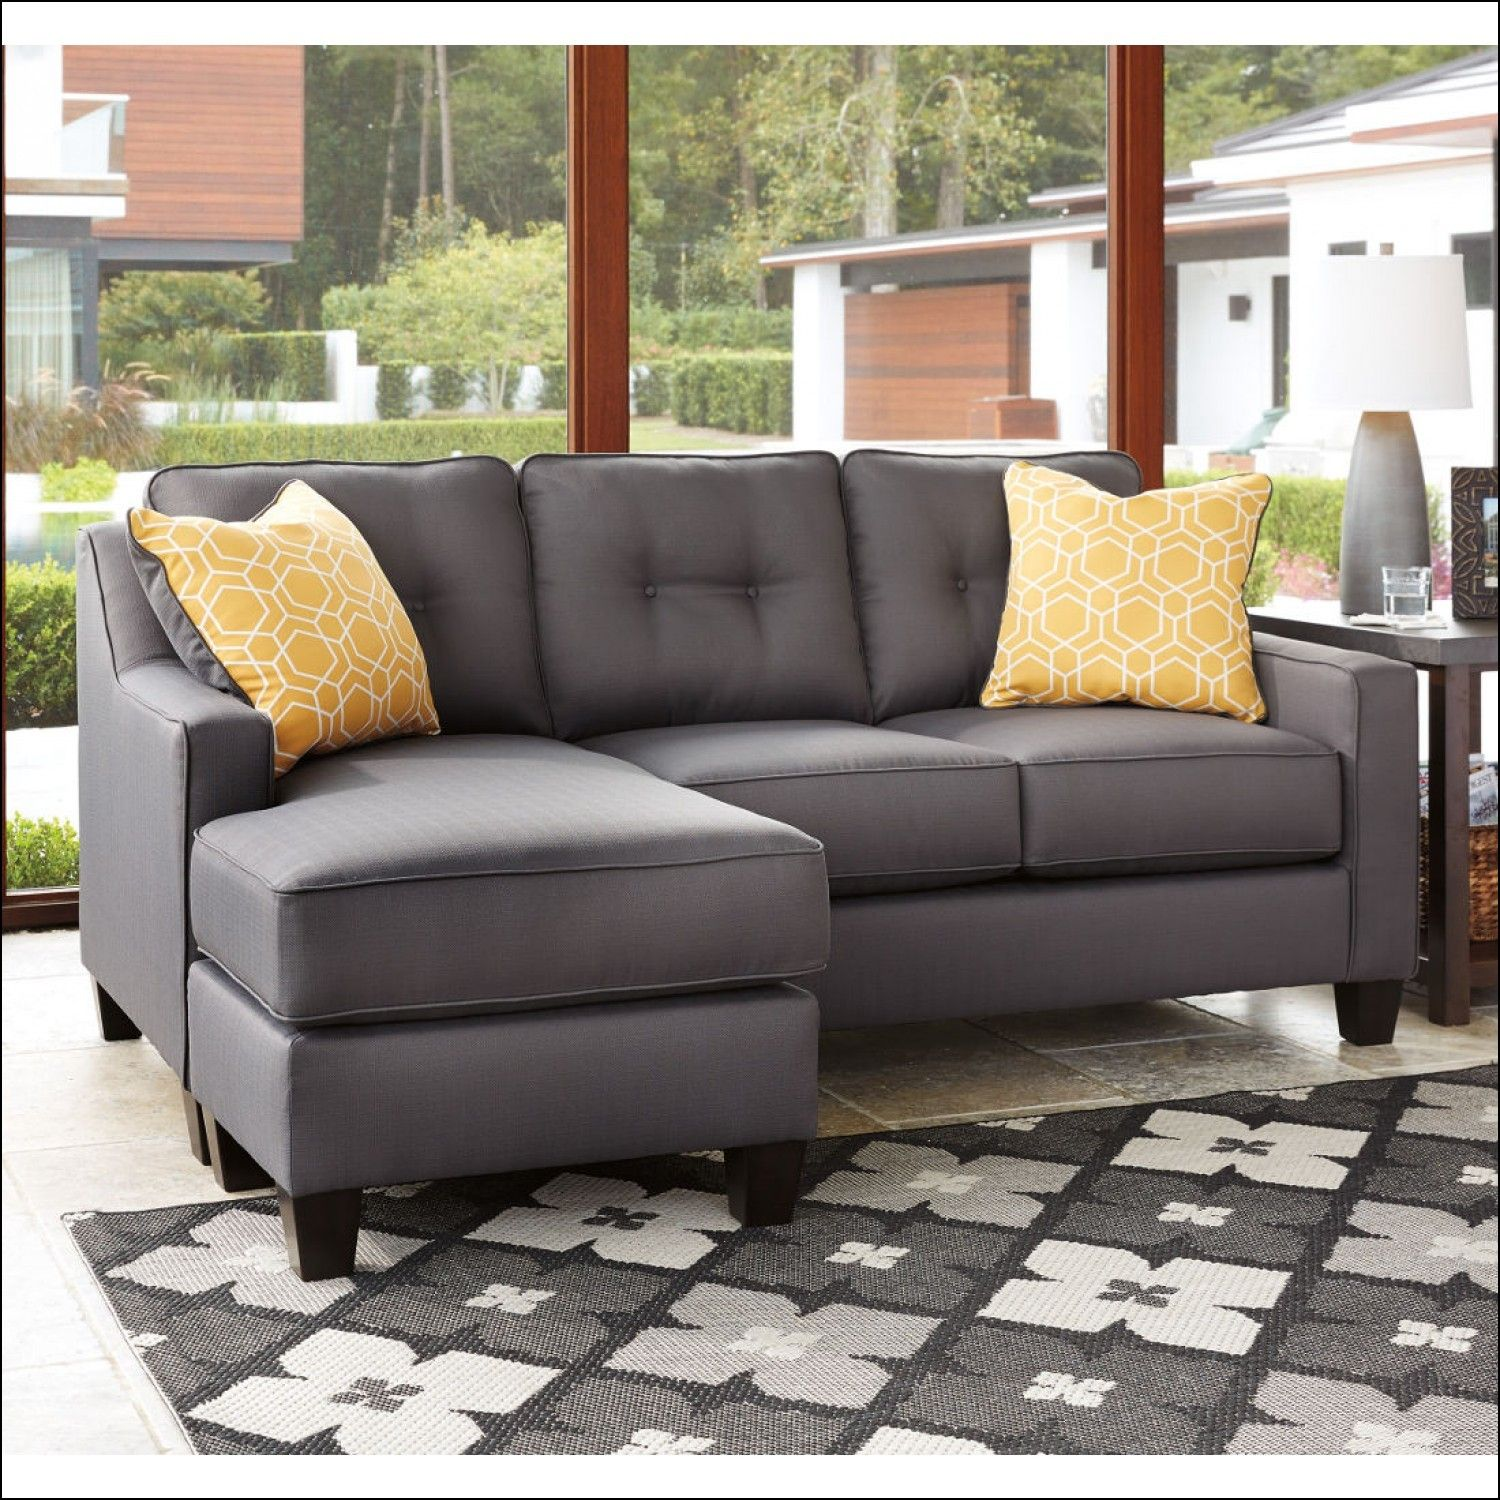 Ashley Furniture Gray Couch Couch & Sofa Gallery